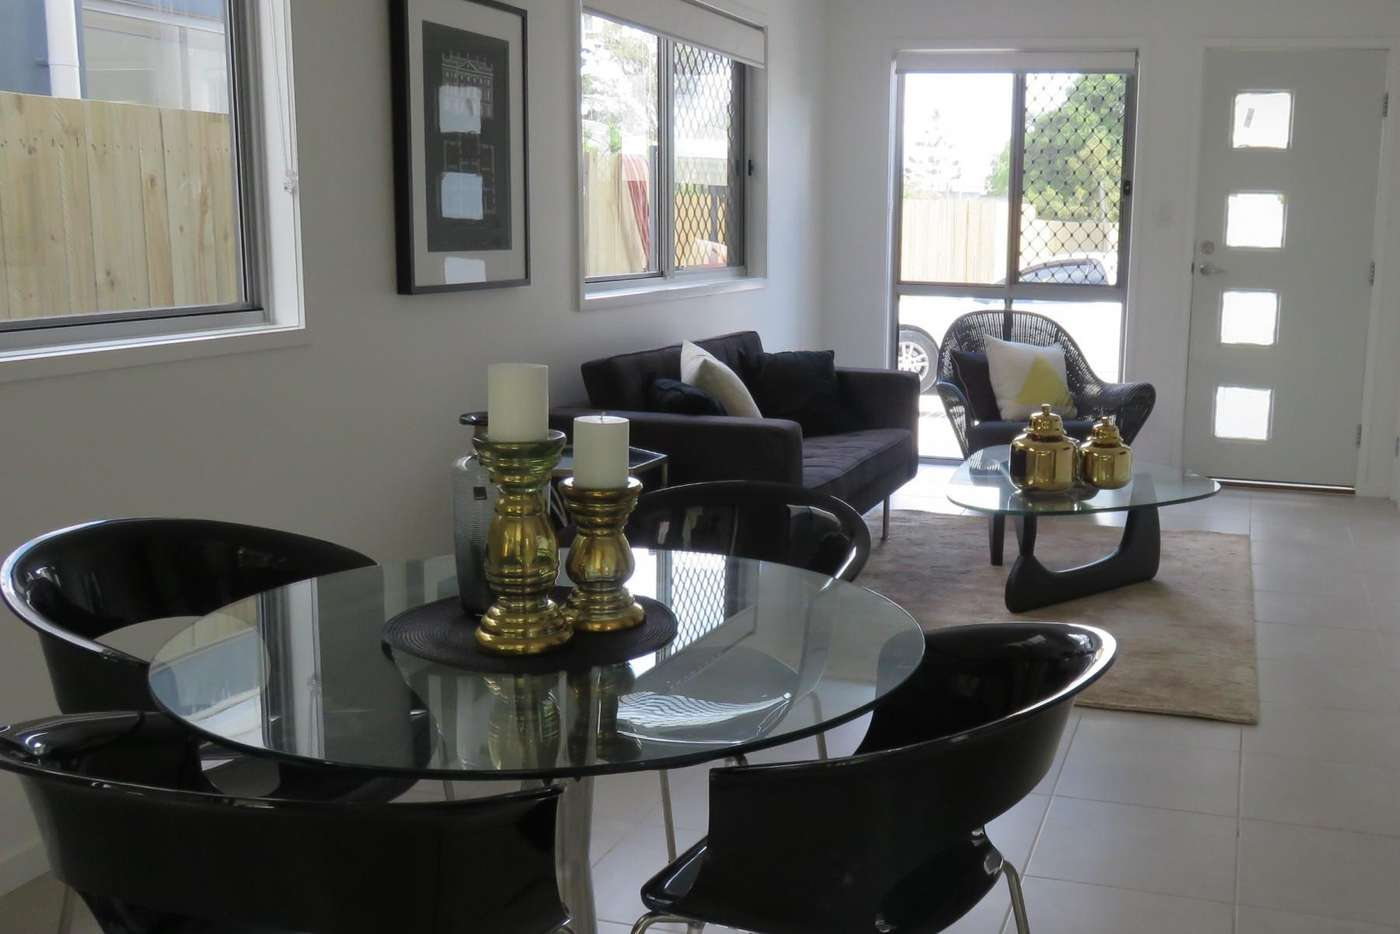 Main view of Homely townhouse listing, LN:10148/63 Harlen Rd, Salisbury QLD 4107